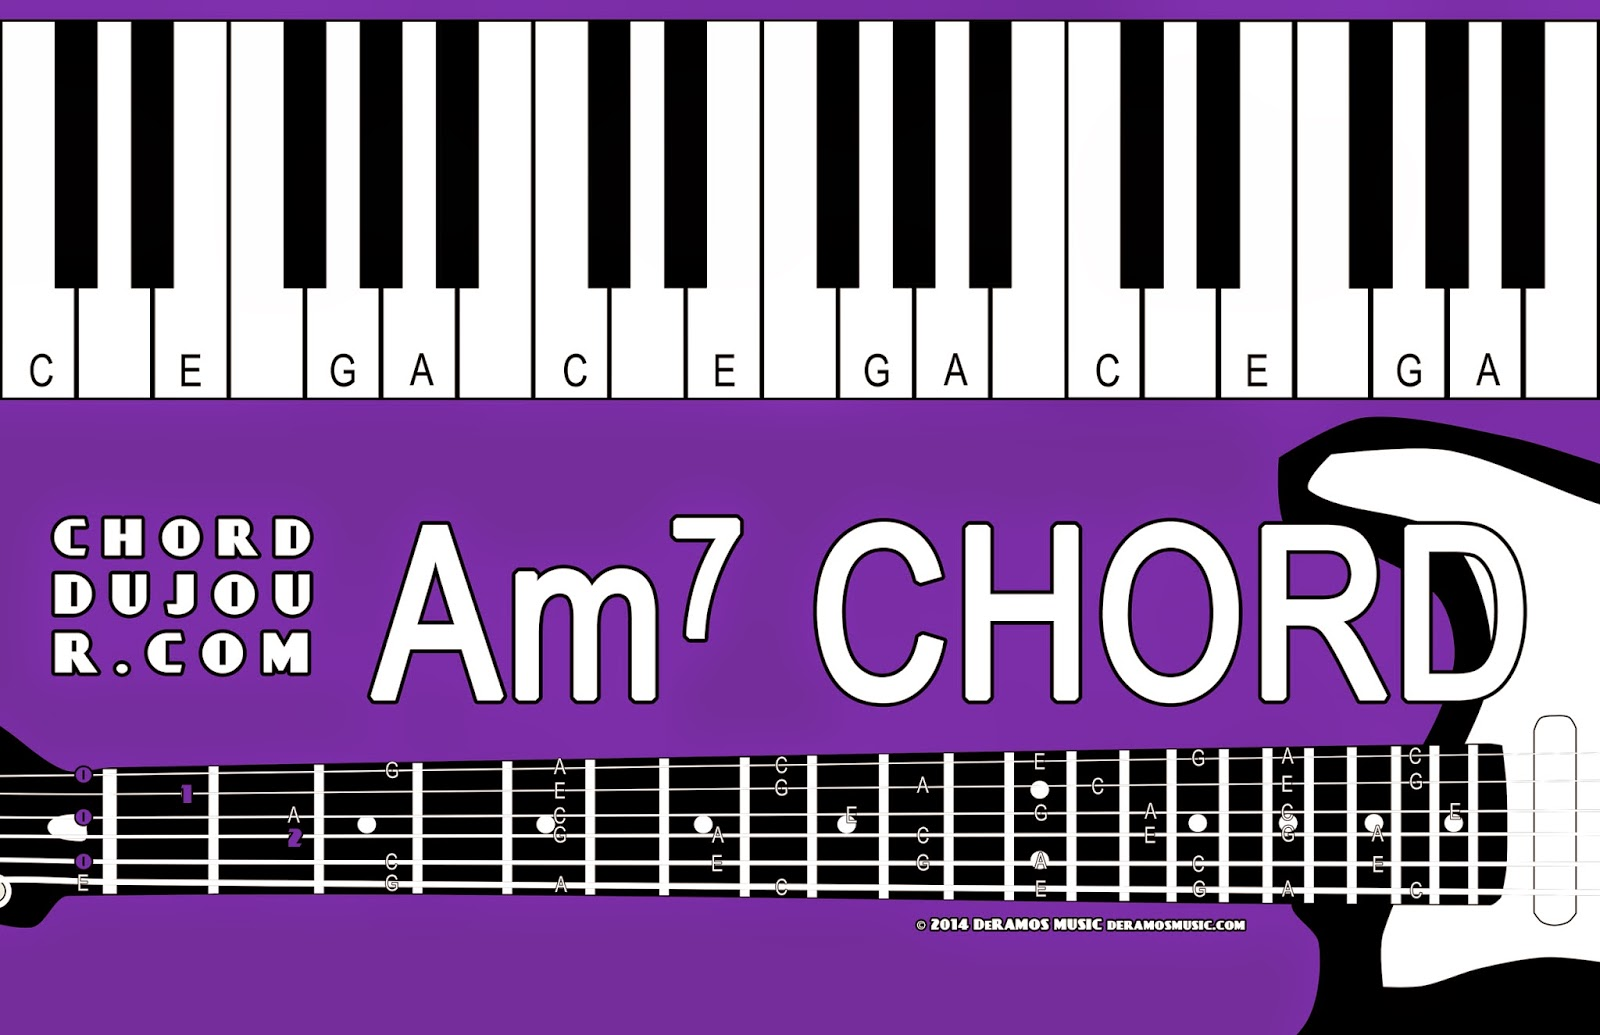 Chord du jour chord deux jour challenge fmaj7 and am7 guitarists there are two ways to look at this particular iteration of am7 take the c chord and raise your ring finger off the a string hexwebz Image collections